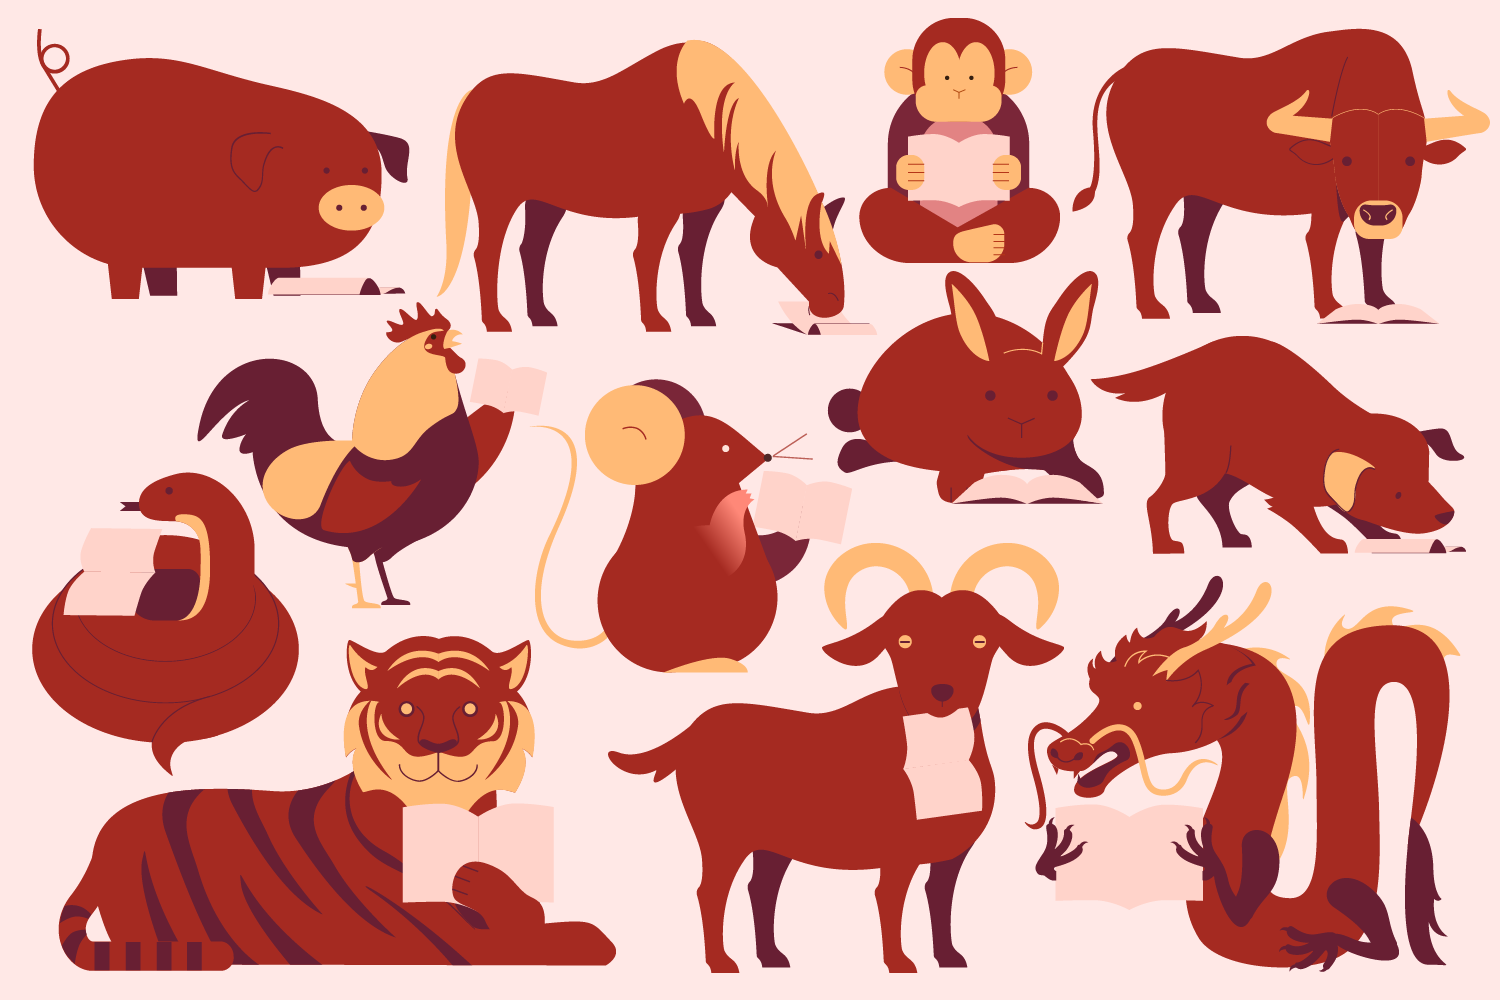 this is an illustration of the 12 chinese zodiac